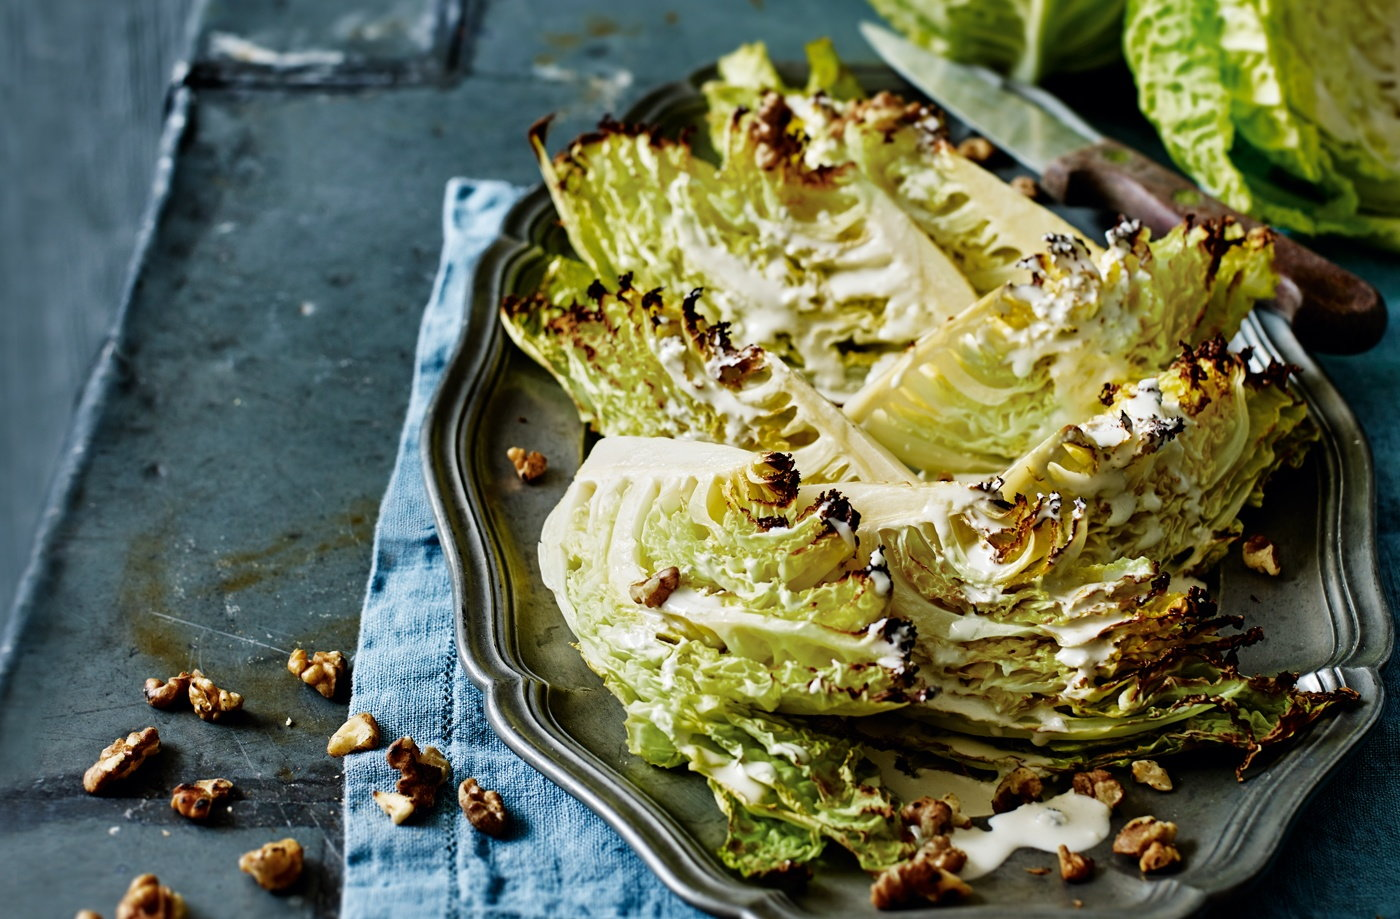 Roasted Savoy cabbage wedges with blue cheese dressing and walnuts recipe